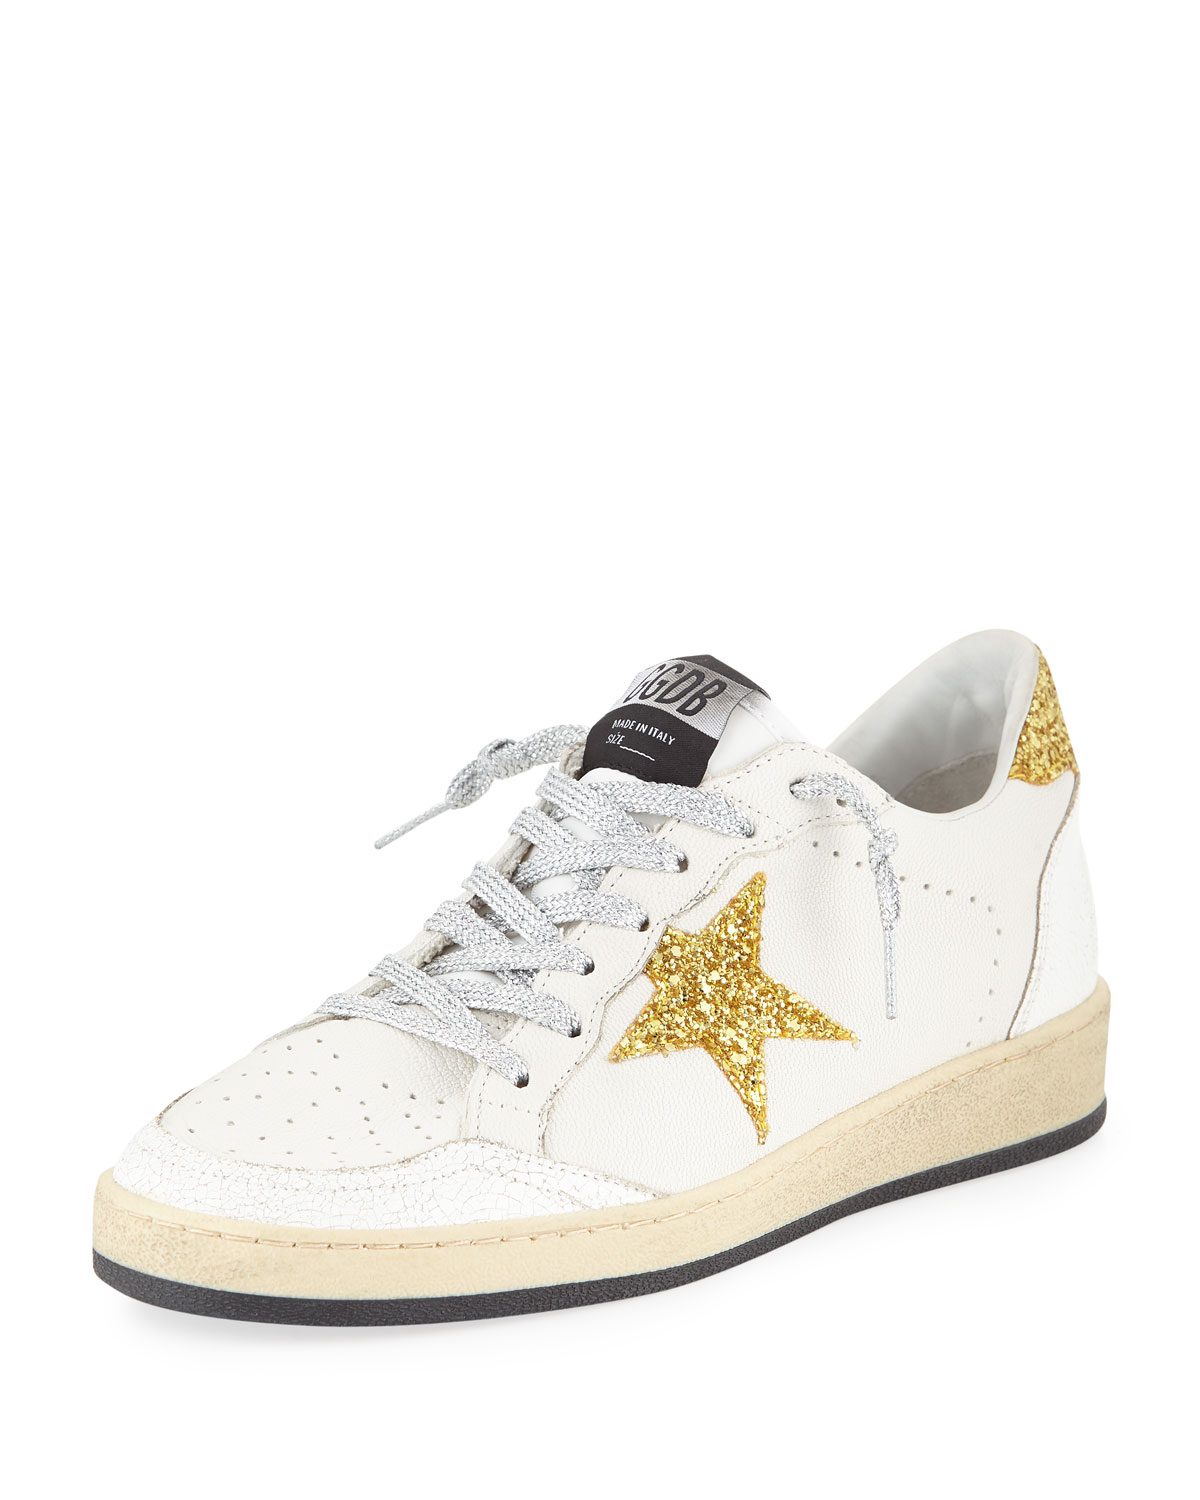 Ball Star Glitter & Leather Sneakers With Shimmer Laces, White/Gold